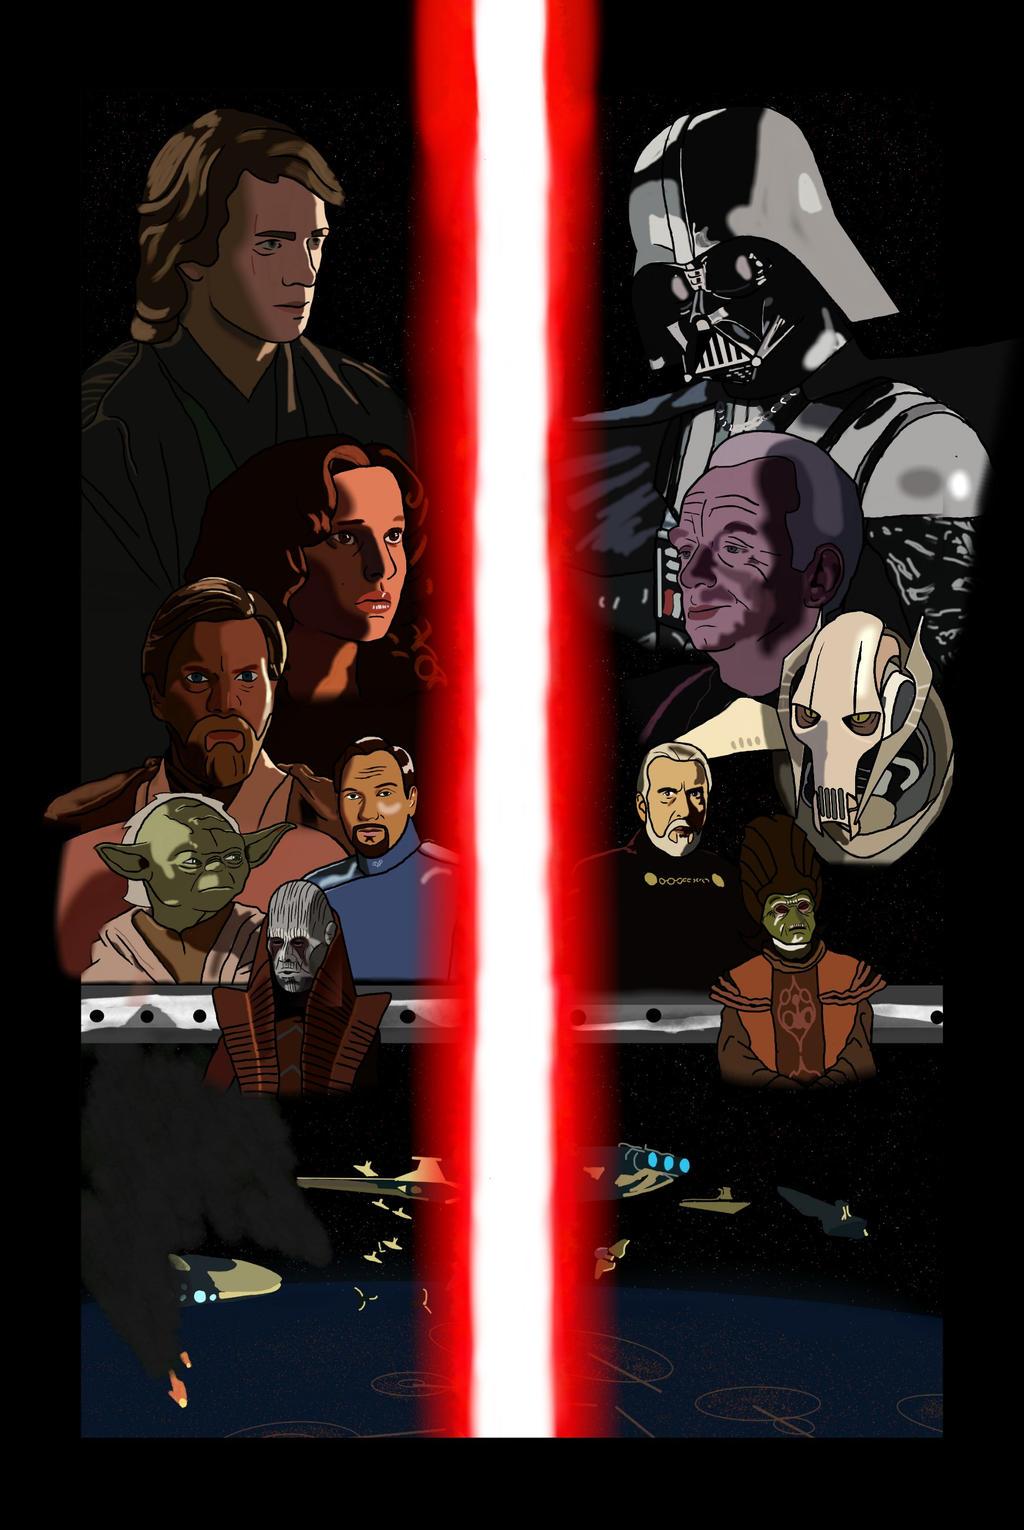 Star Wars Revenge Of The Sith Fan Poster By Starwars505 On Deviantart